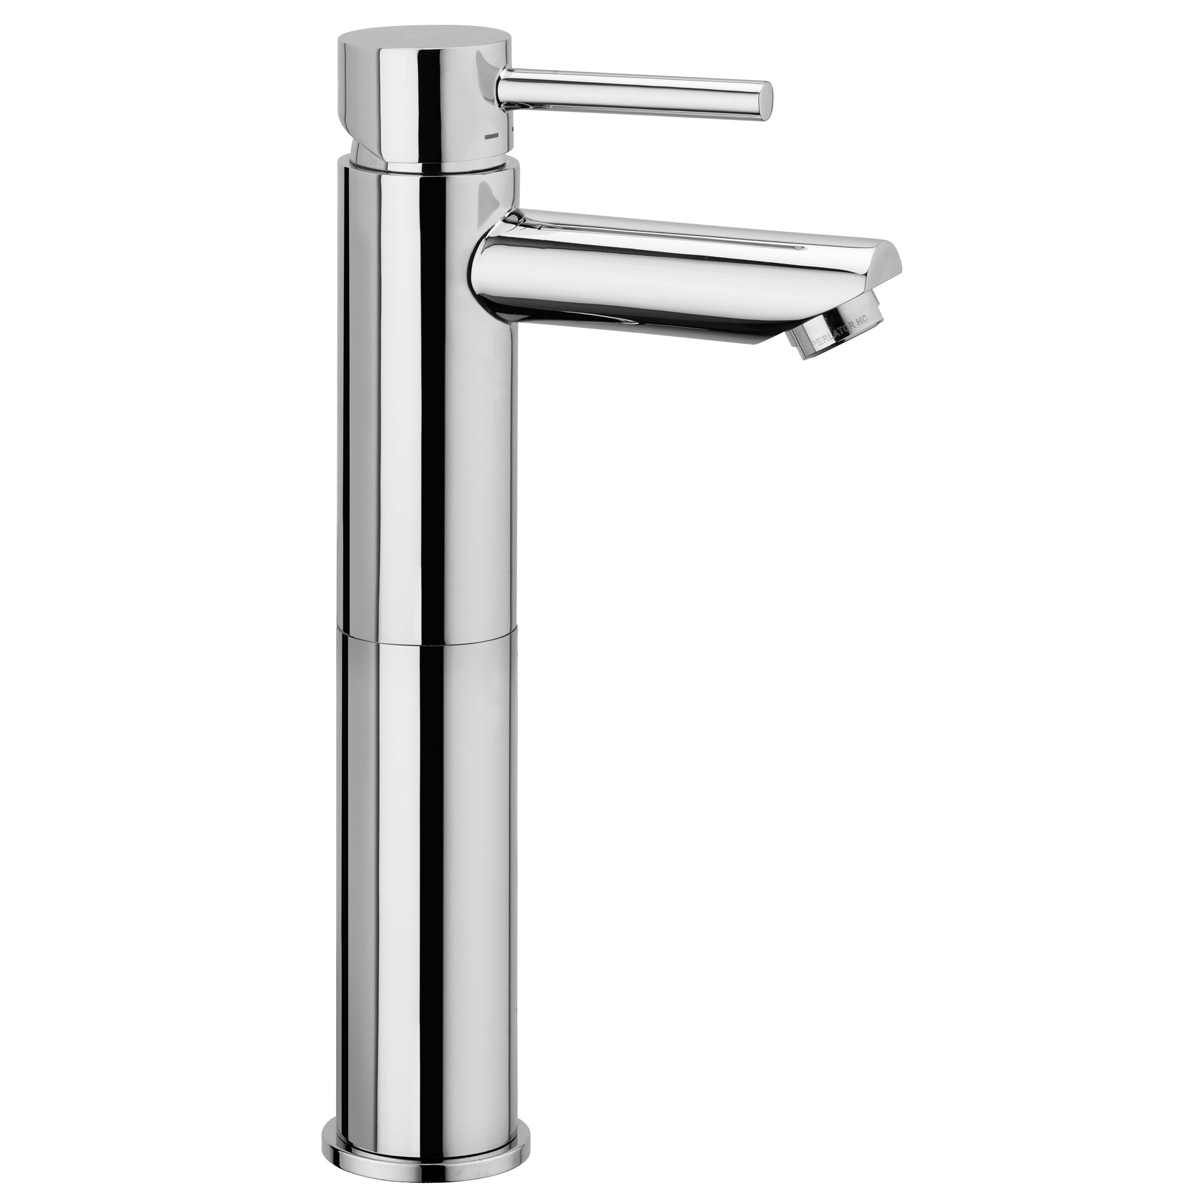 Miscelatore per lavabo con prolunga stick for Miscelatore lavabo